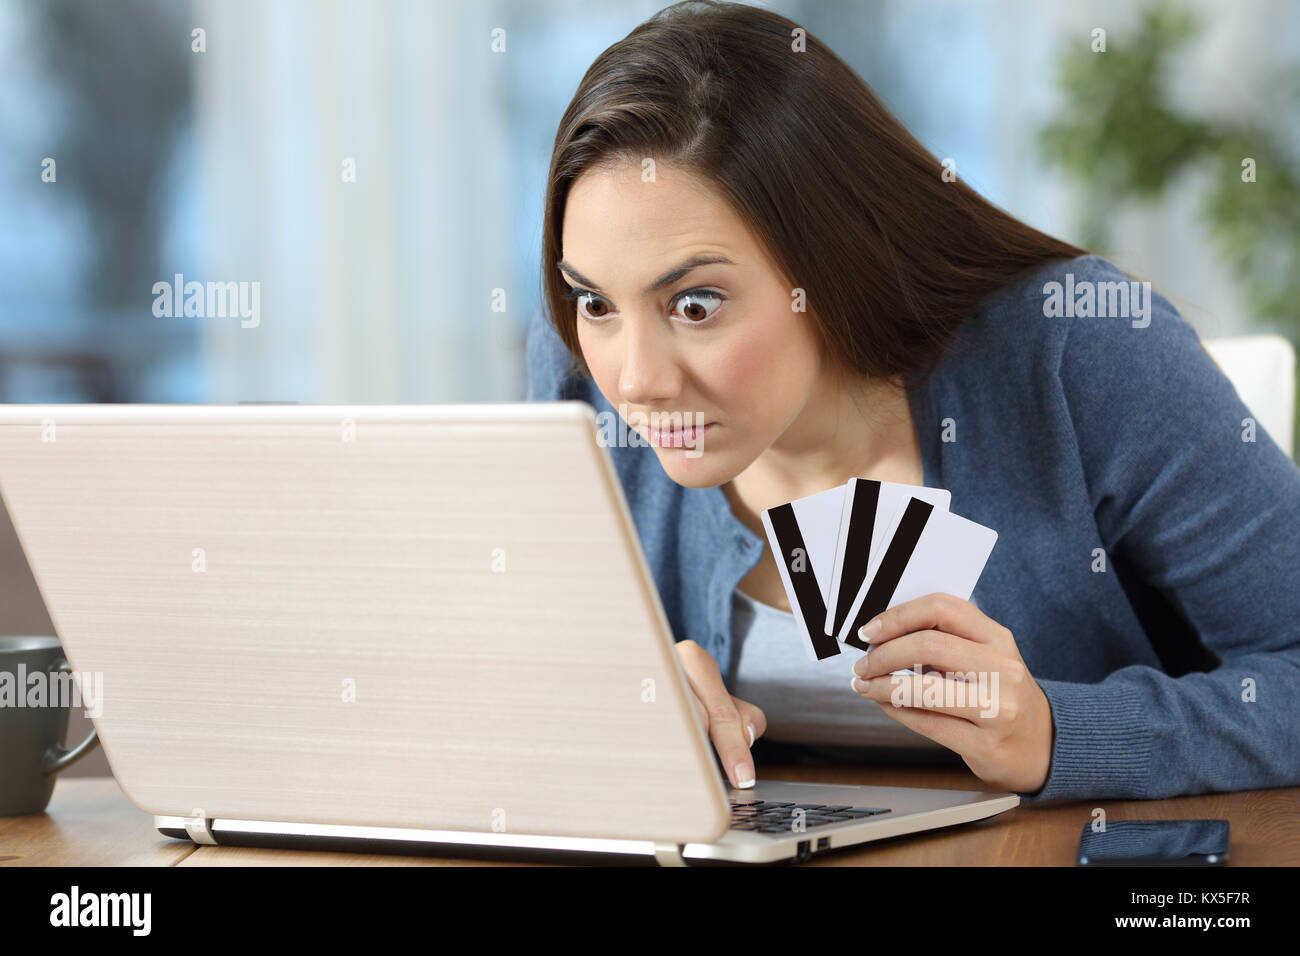 Obsessed compulsive on line shopper or gambler checking results in a laptop at home - Stock Image